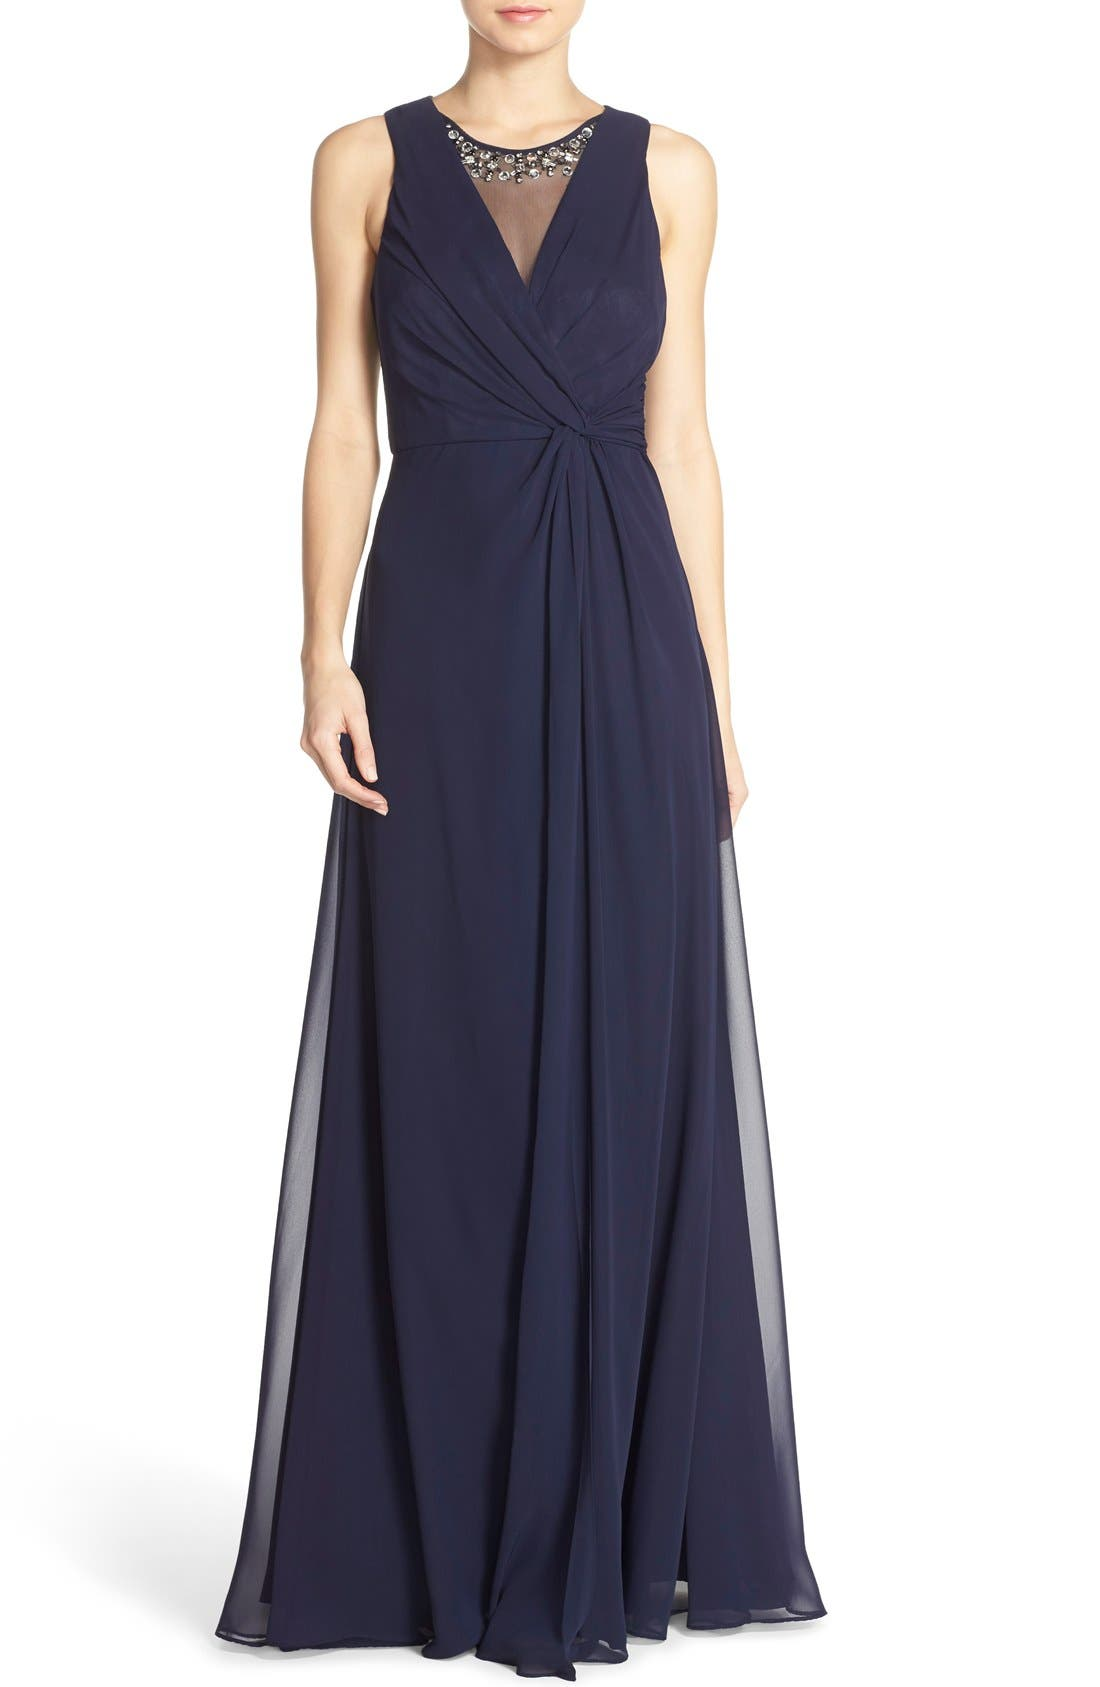 Alternate Image 1 Selected - Eliza J Embellished Chiffon Fit & Flare Gown